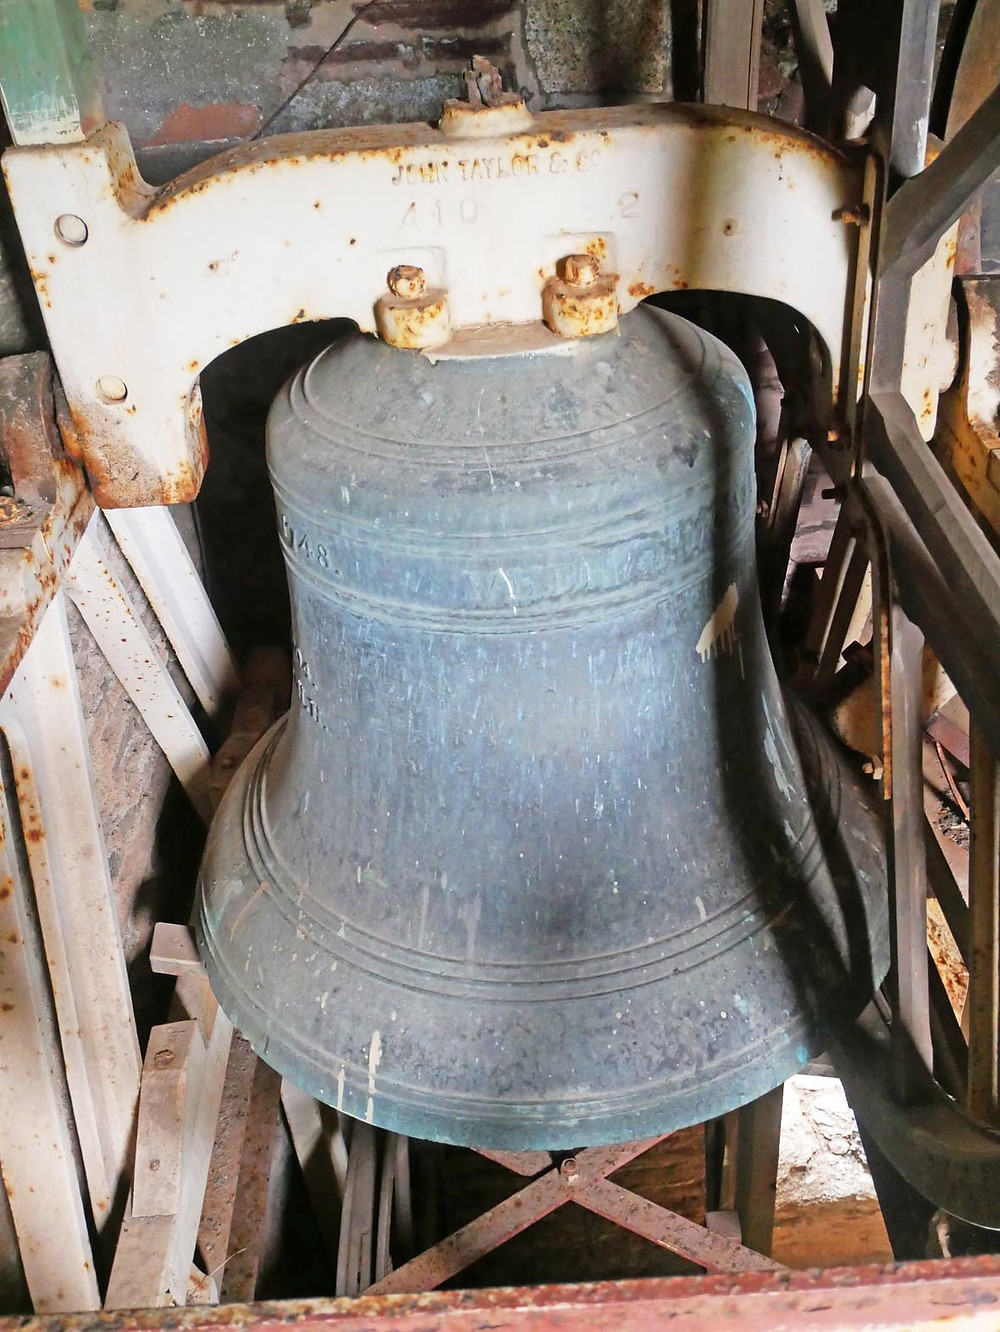 Church bell dedicated to Admiral Vernon at St Peter & St Paul, Ermington